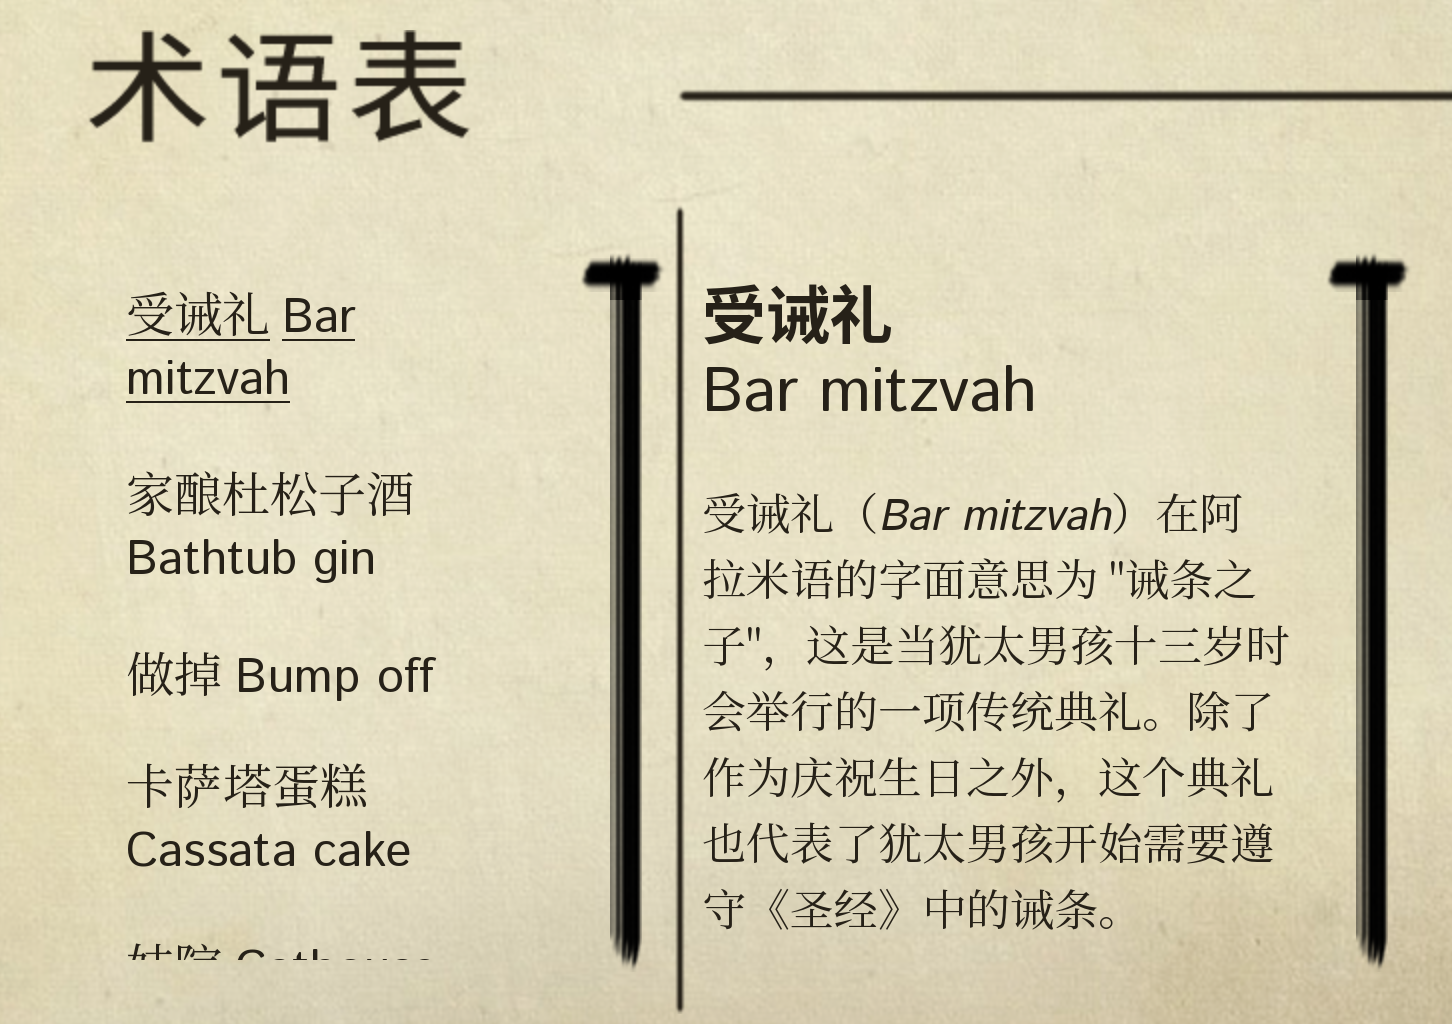 Screenshot of Chinese glossary showing each entry with English and Chinese text